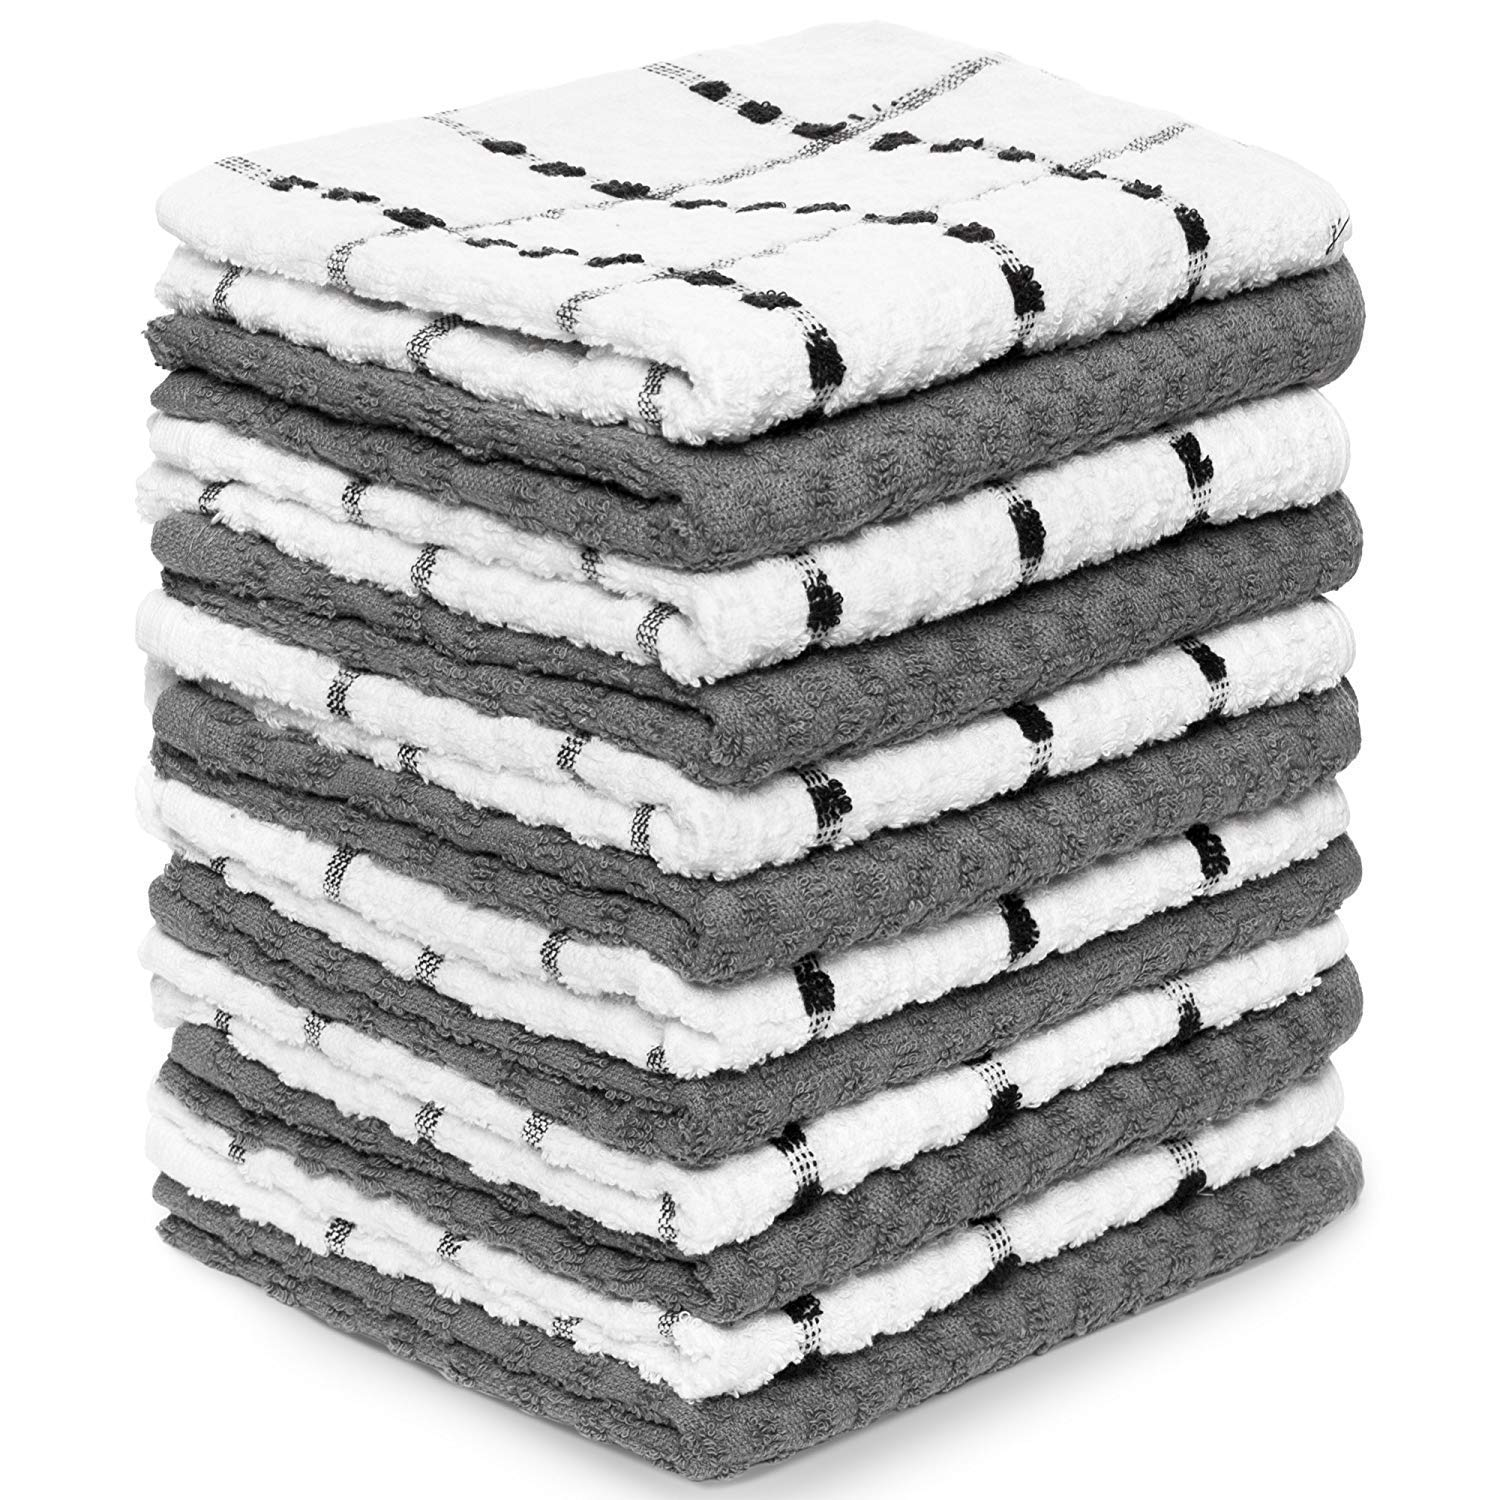 """Kitchen Towels 12 Pack - Dish Towels and Dish Cloths - Hand Towel and Dishcloths Sets - 100% Soft Ring Spun Combed Cotton - Great for Cooking in Kitchen or Household Cleaning - Size 15"""" x 25"""" (Gray)"""